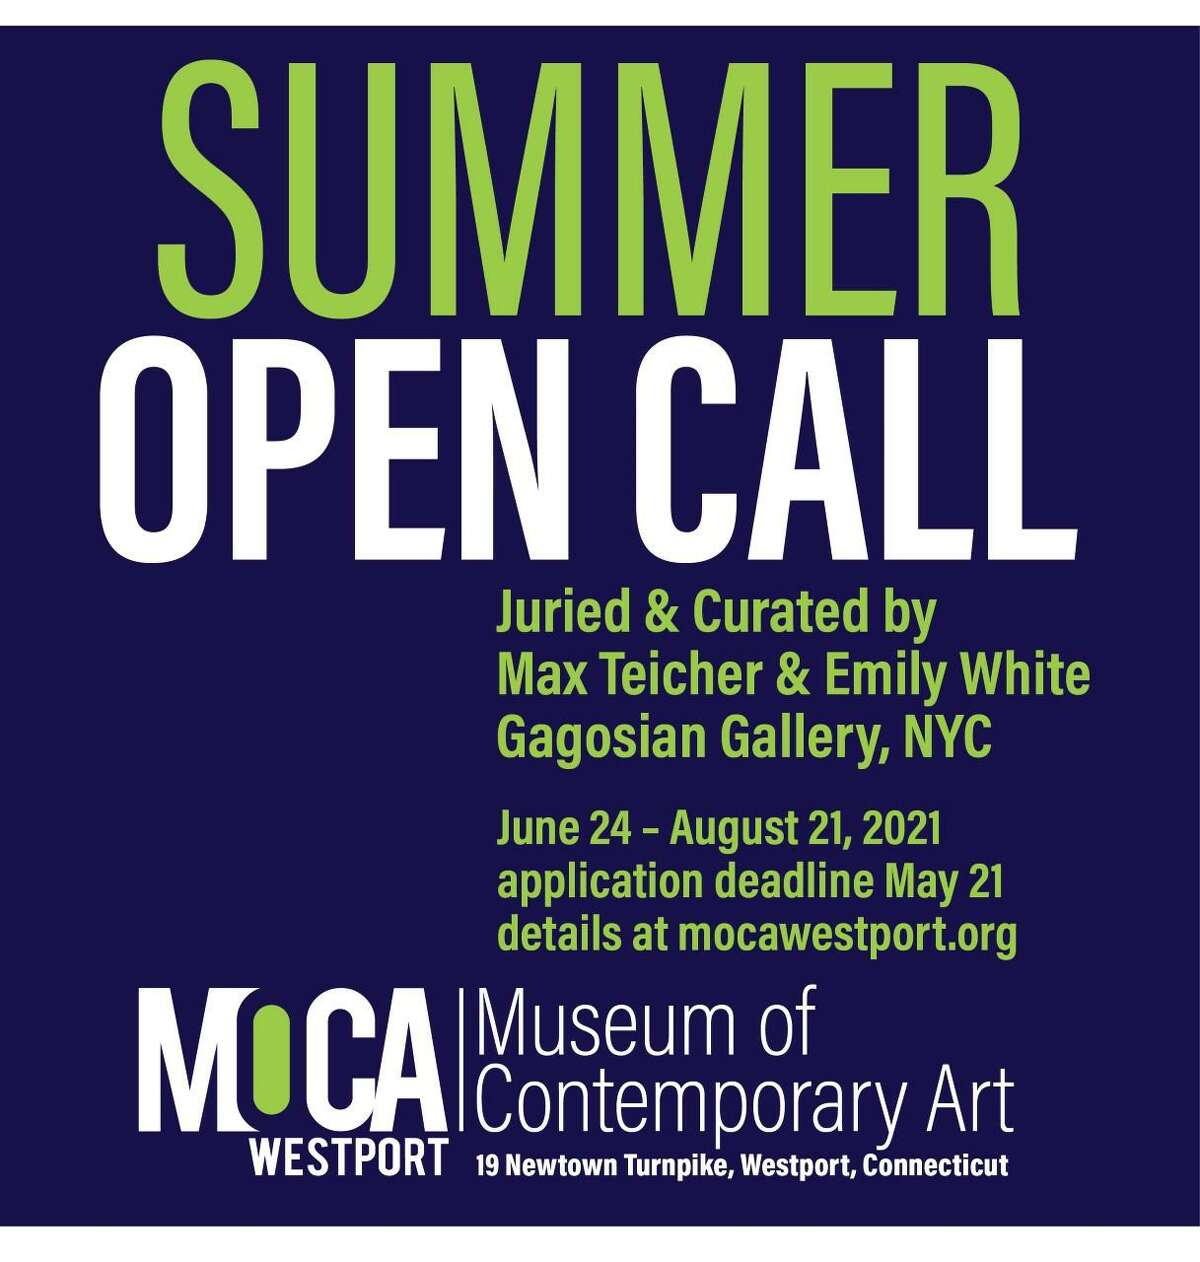 The art museum, MoCA Westport is pleased to announce its first Summer Open Call, a juried exhibition open to all emerging, mid career, and established visual artists over the age of 18-years-old. Max Teicher, and Emily White of Gagosian Gallery, NYC, (New York City,) will be the distinguished jurists and curators for this year's, 2021, exhibition, which is taking place June 25, 2021, through Aug. 25.